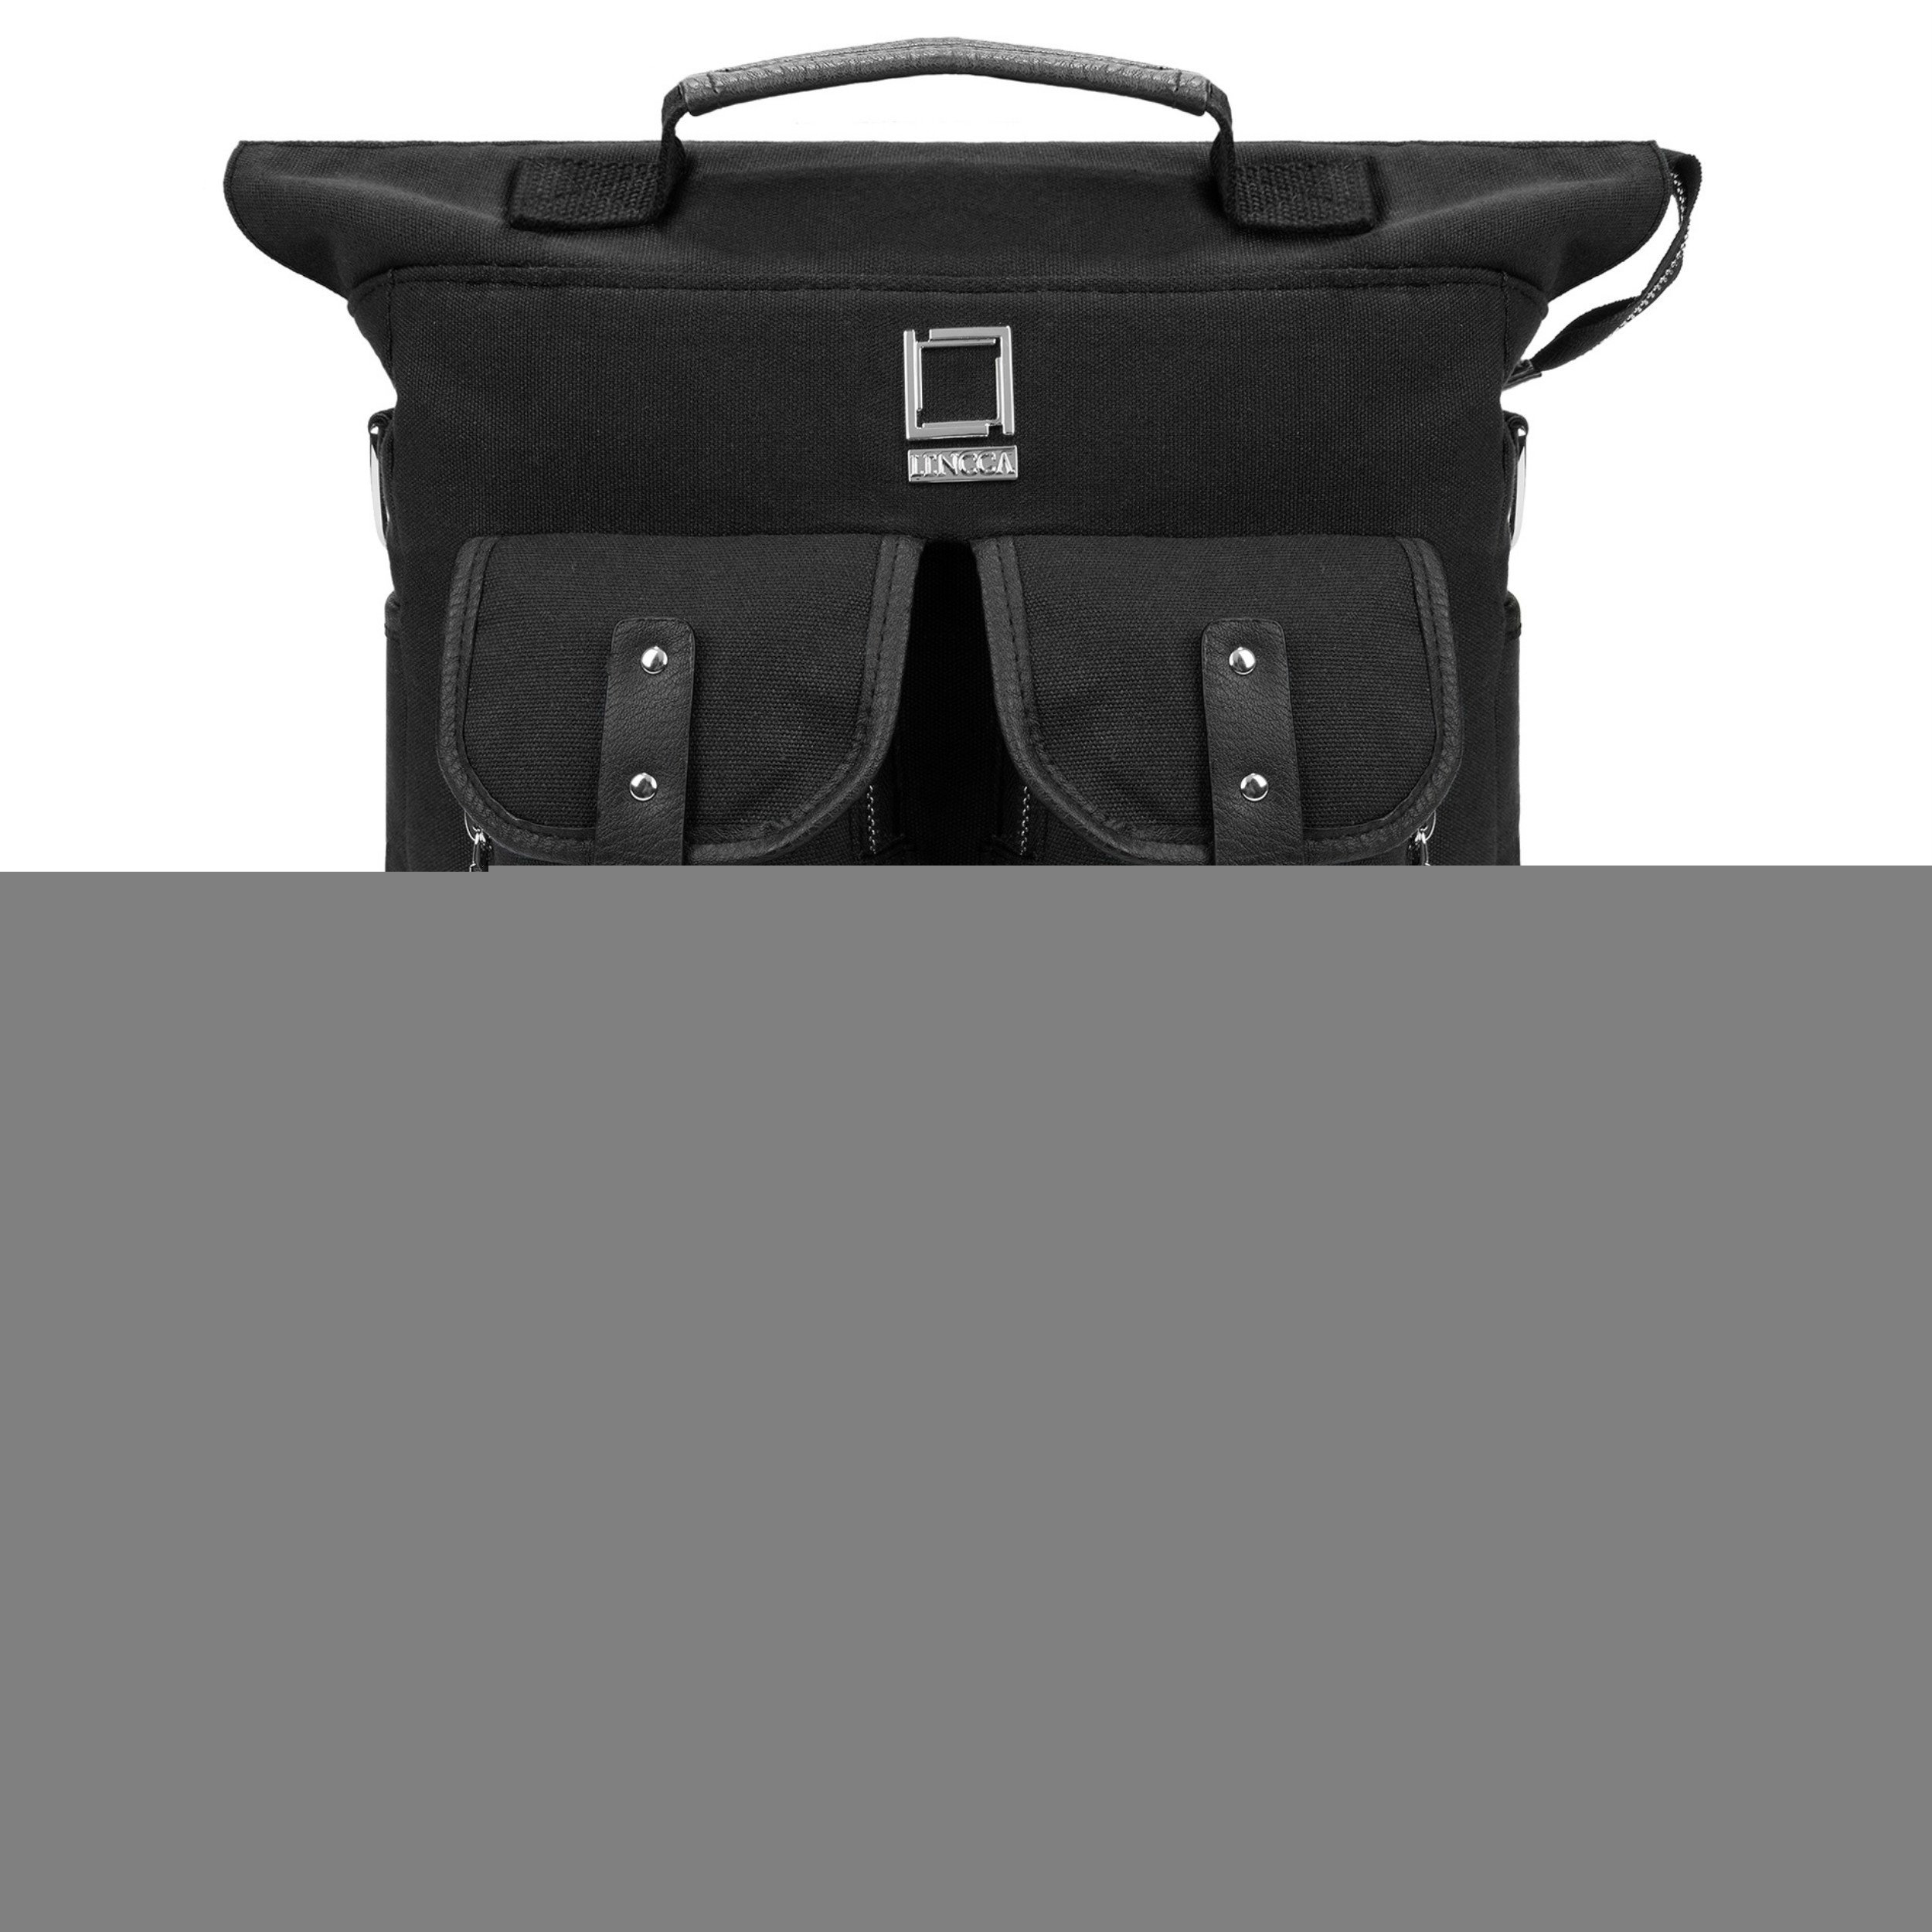 Lencca Popular College Student Daypack / Cause Satchel / Book Carrying Bag For Notebook Samsung Chromebook 2 11.6'' Black & USB 2.0 HUB & HDMI Cable